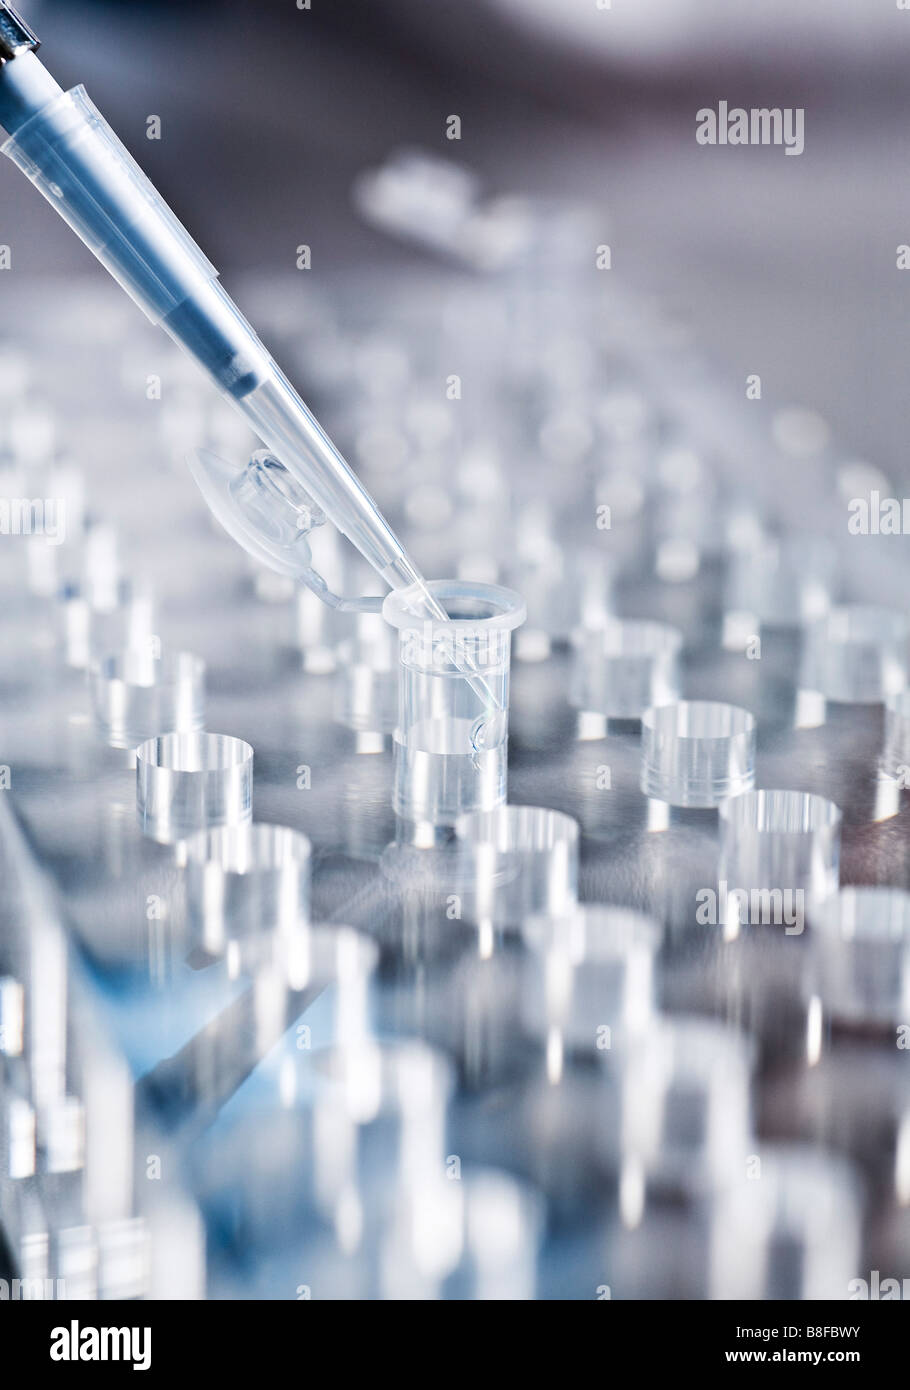 Pipette dropping medical samples into test tube on a test tube rack - Stock Image